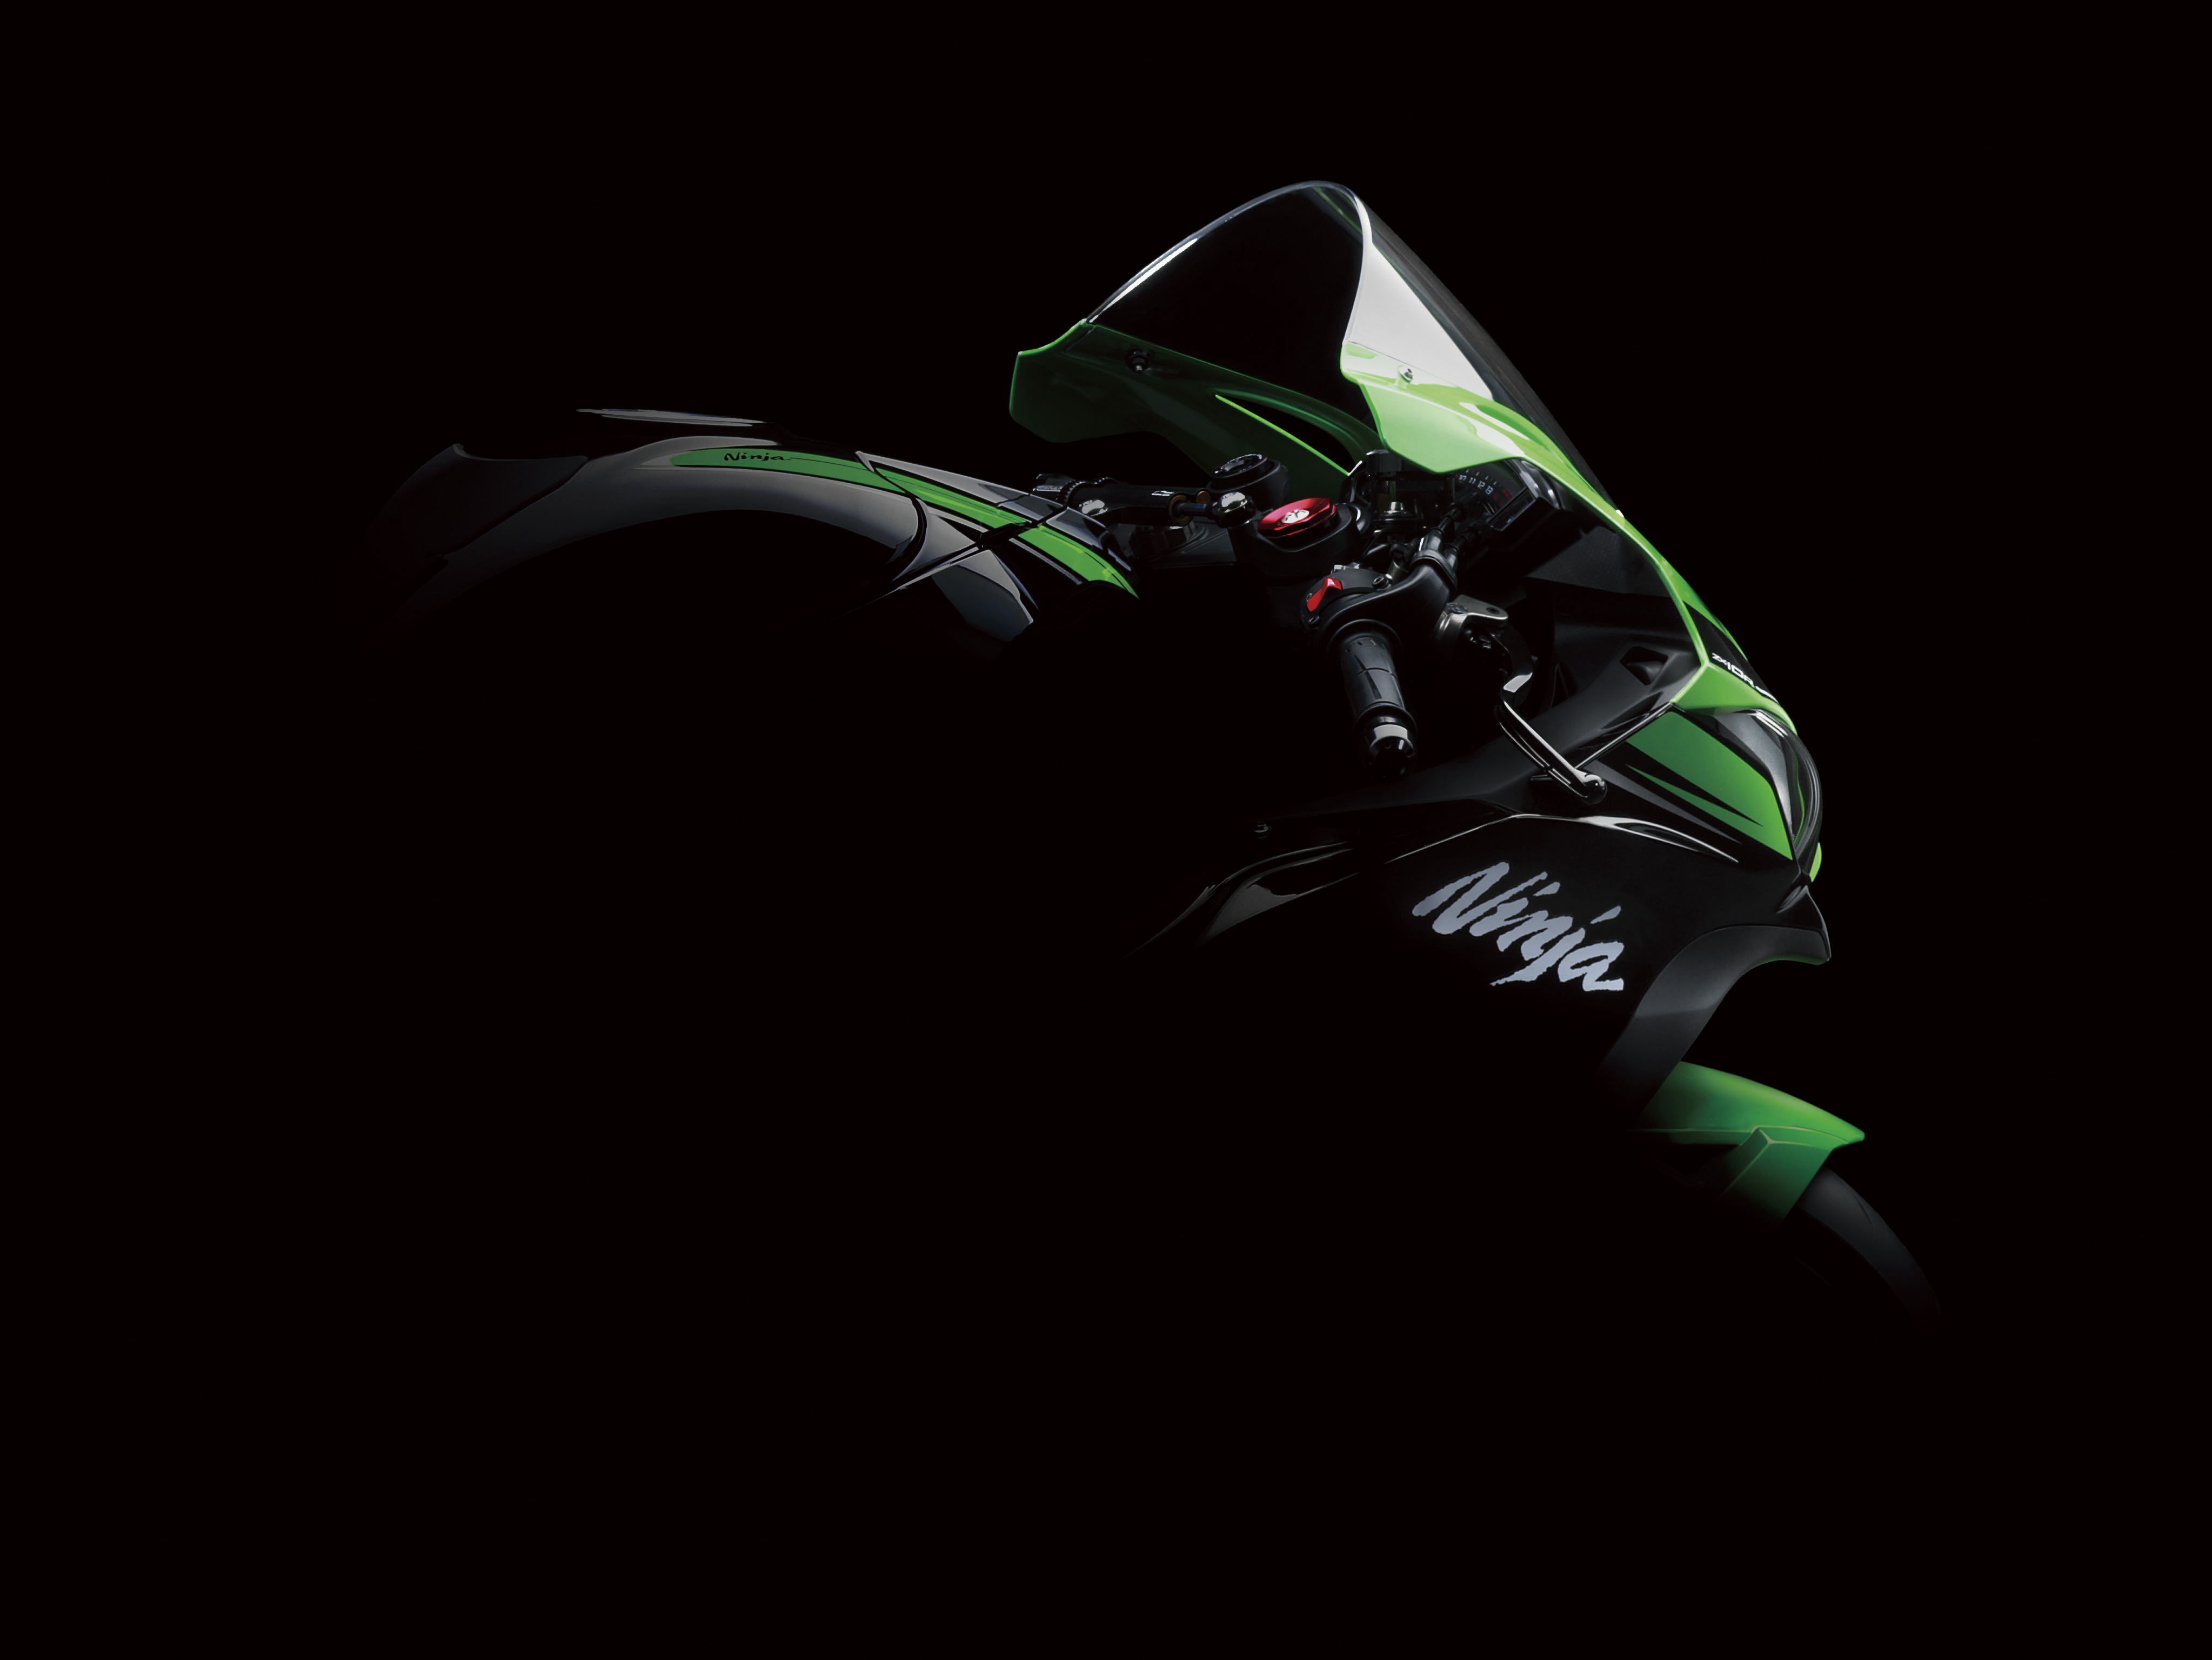 2016 Kawasaki ZX-10R official pic - ZX Forums